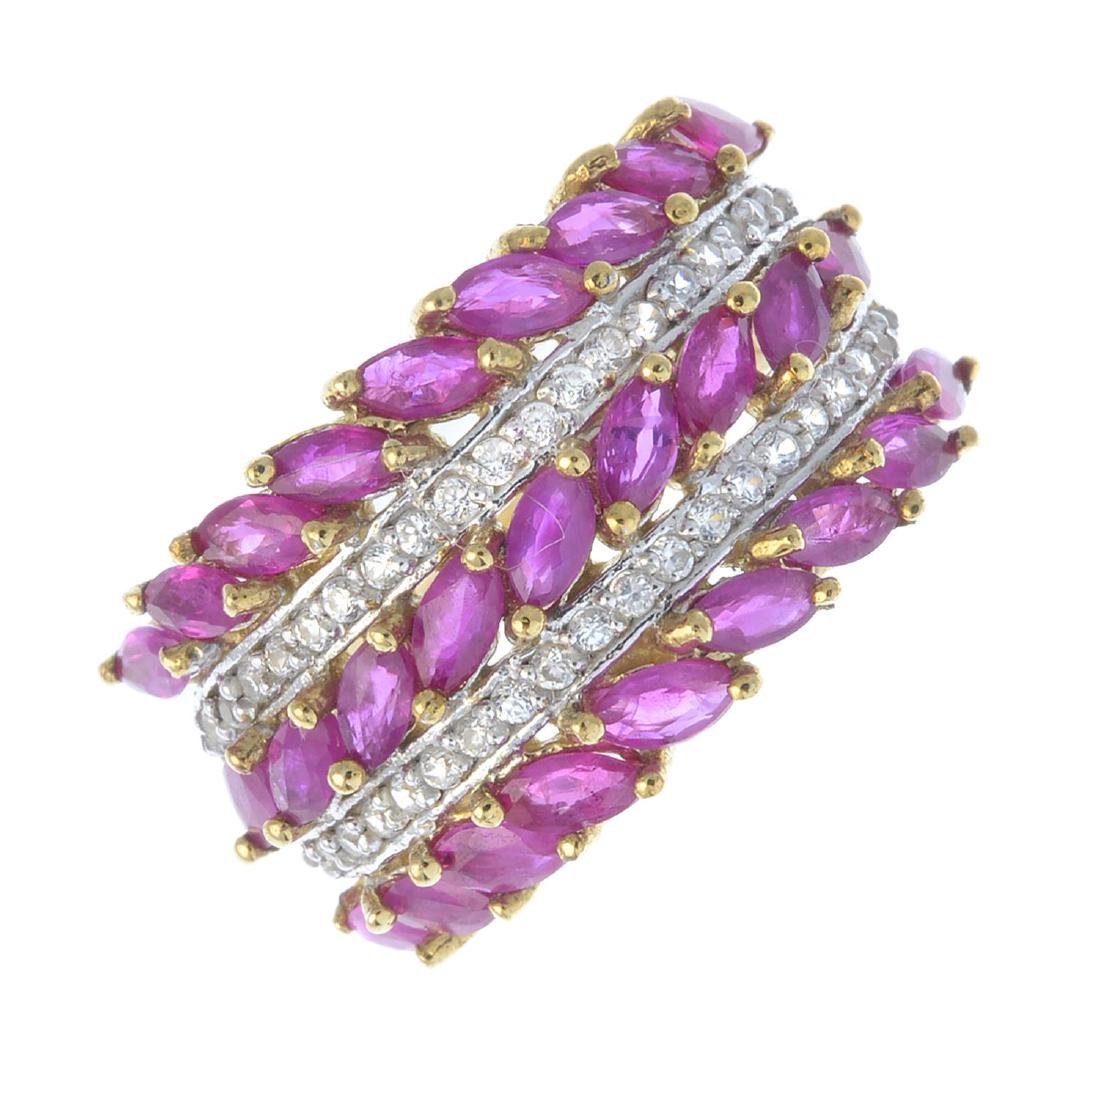 A 9ct gold ruby and cubic zirconia dress ring. Designed